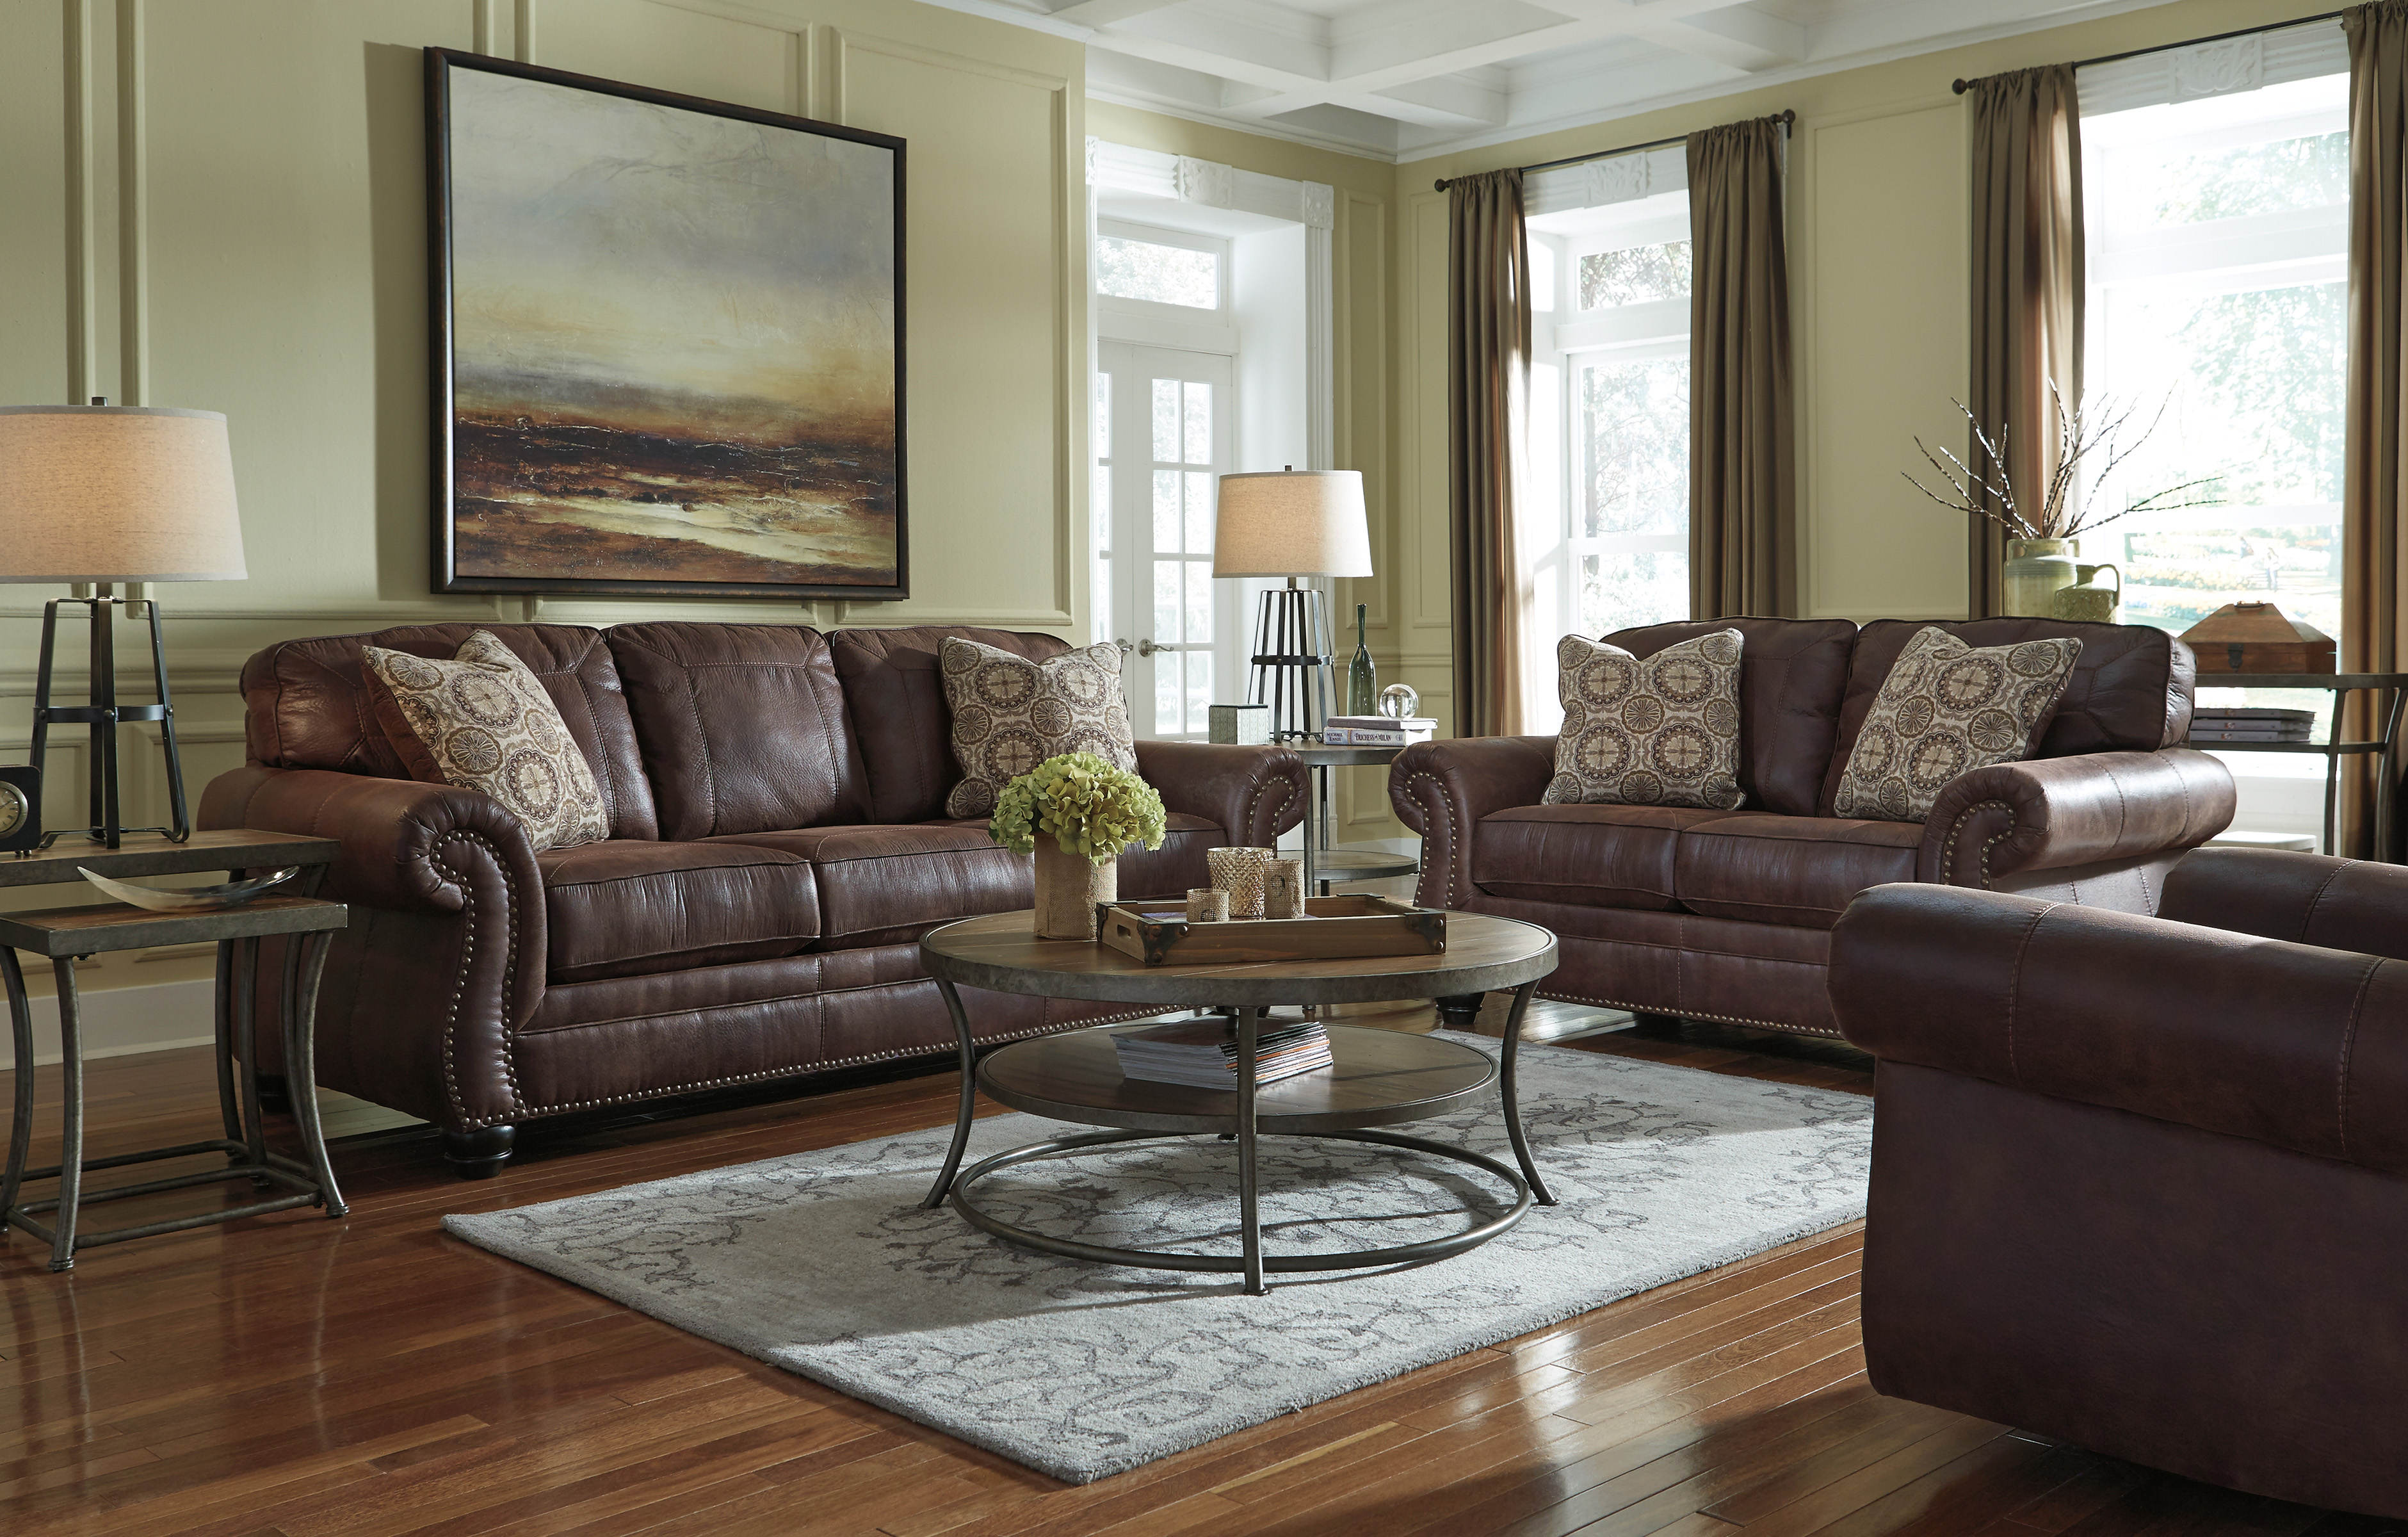 image. NEW Breville Living Room Furniture at Woods Furniture Gallery